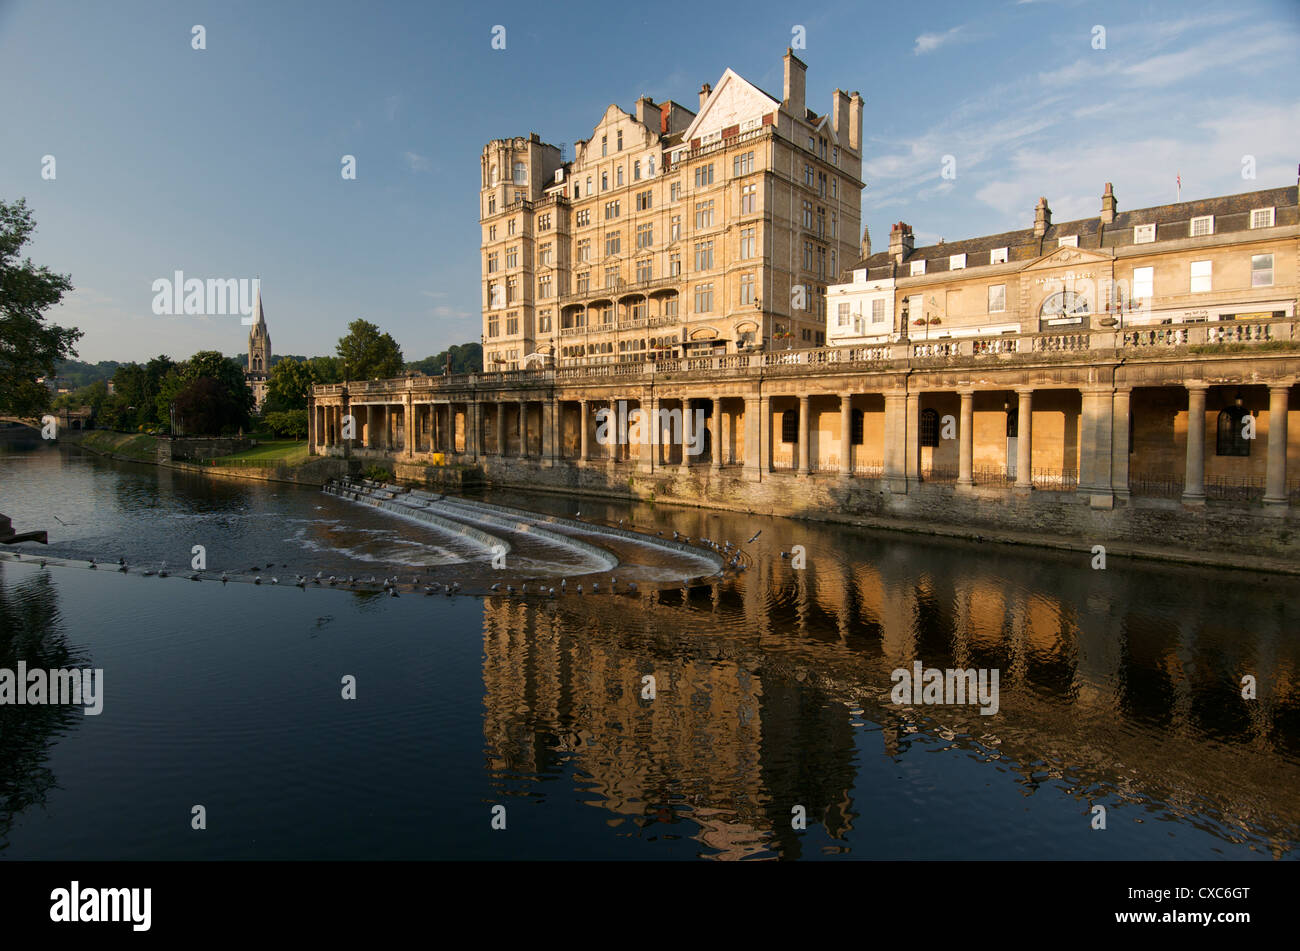 Pulteney Weir, Bath, UNESCO World Heritage Site, Avon, England, United Kingdom, Europe - Stock Image